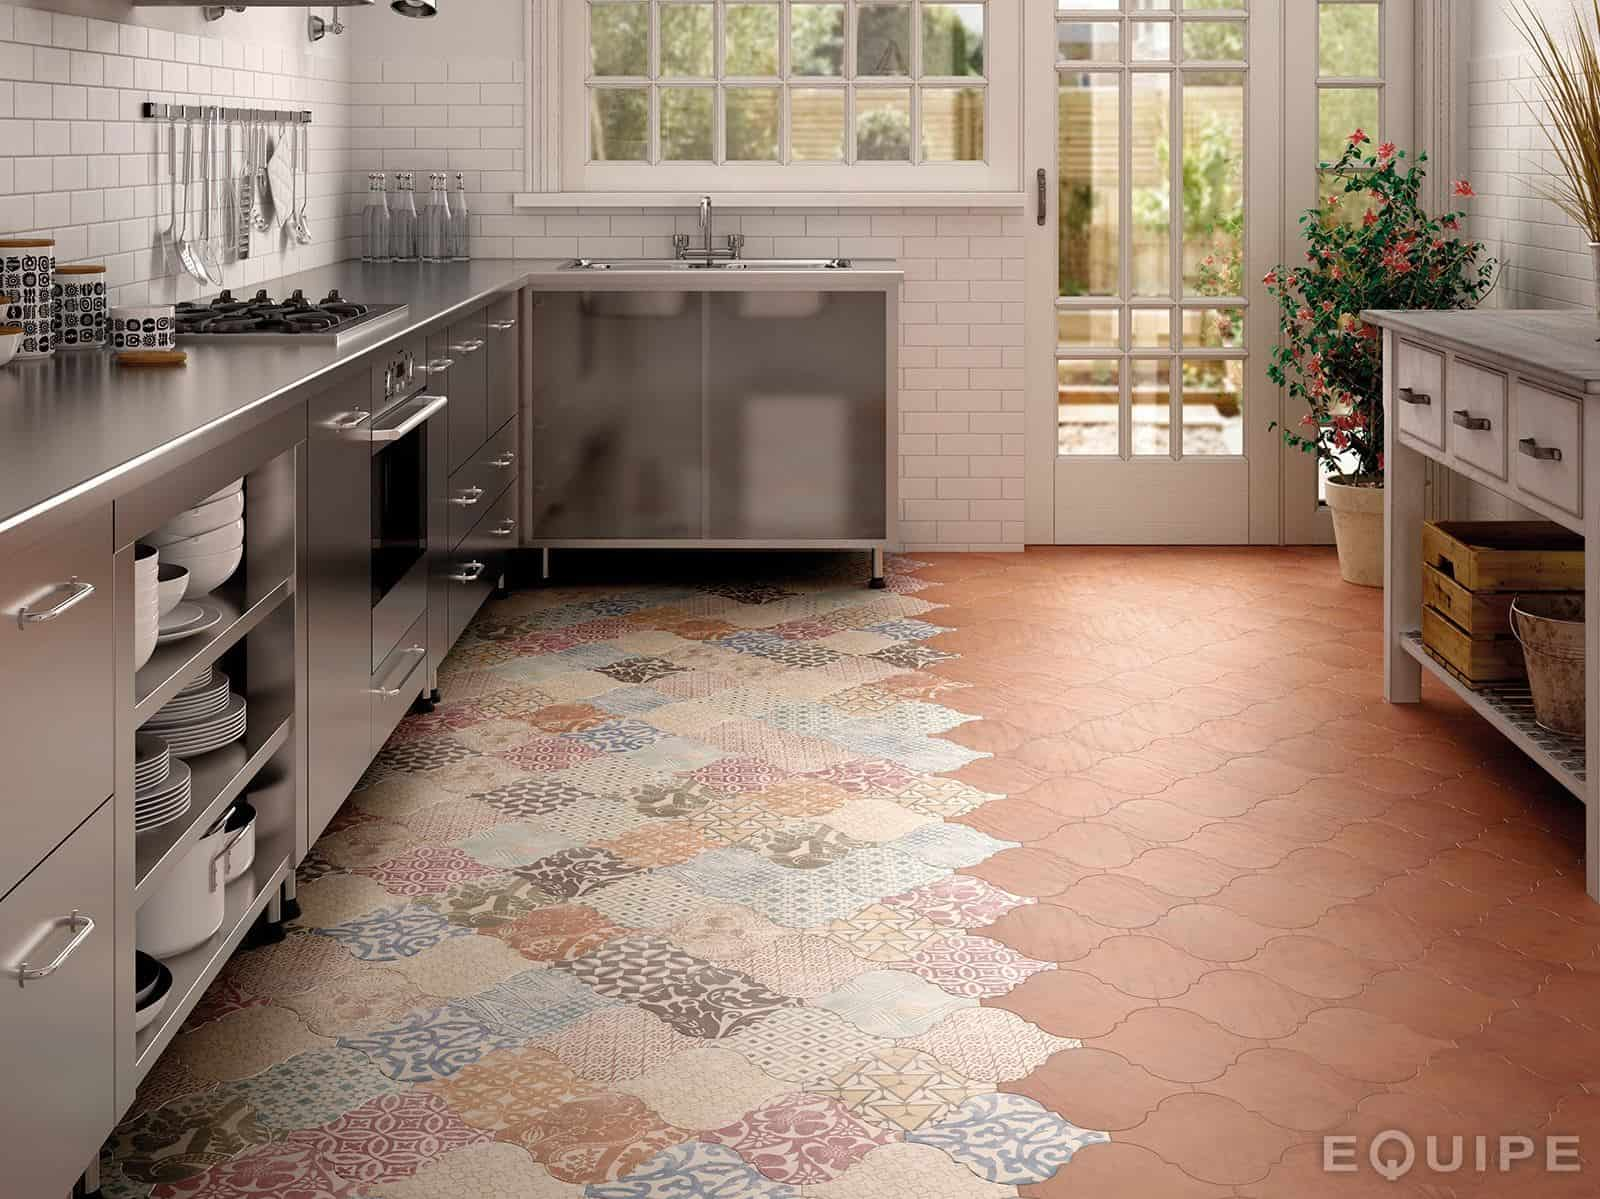 kitchen floor tile designs. View In Gallery Arabesque Tile Kitchen Floor Patchwork Equipe 4 Jpg 21 Arabesque Tile Ideas For Floor  Wall And Backsplash